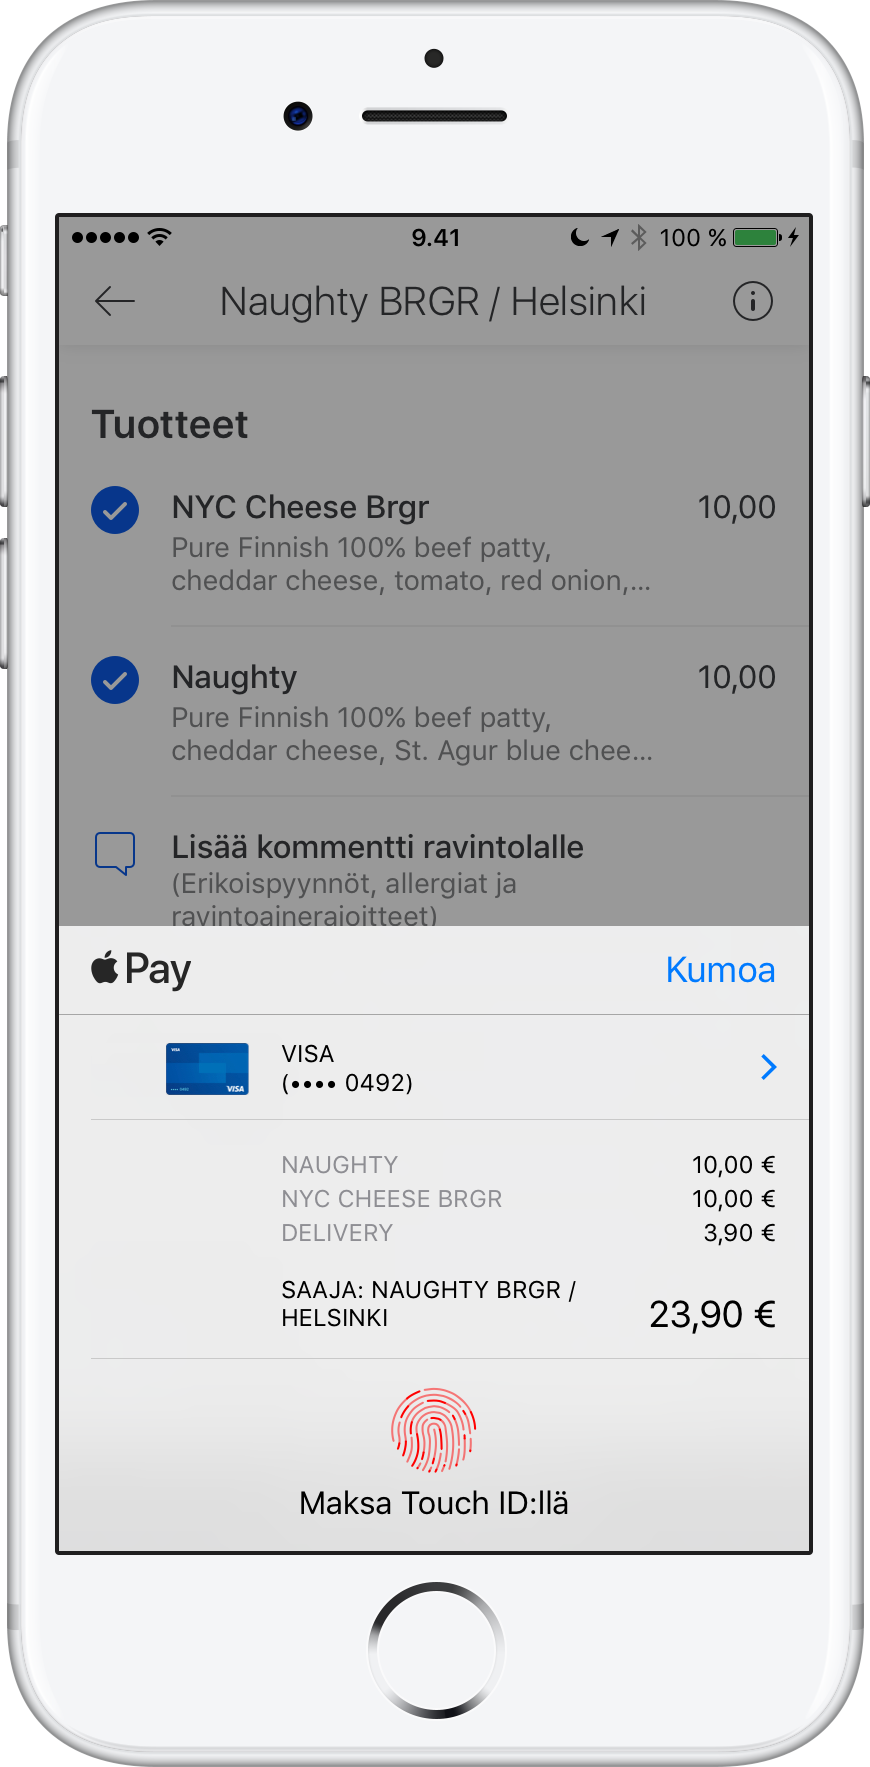 Paying for some delicious food from Naughty BRGR with Apple Pay.